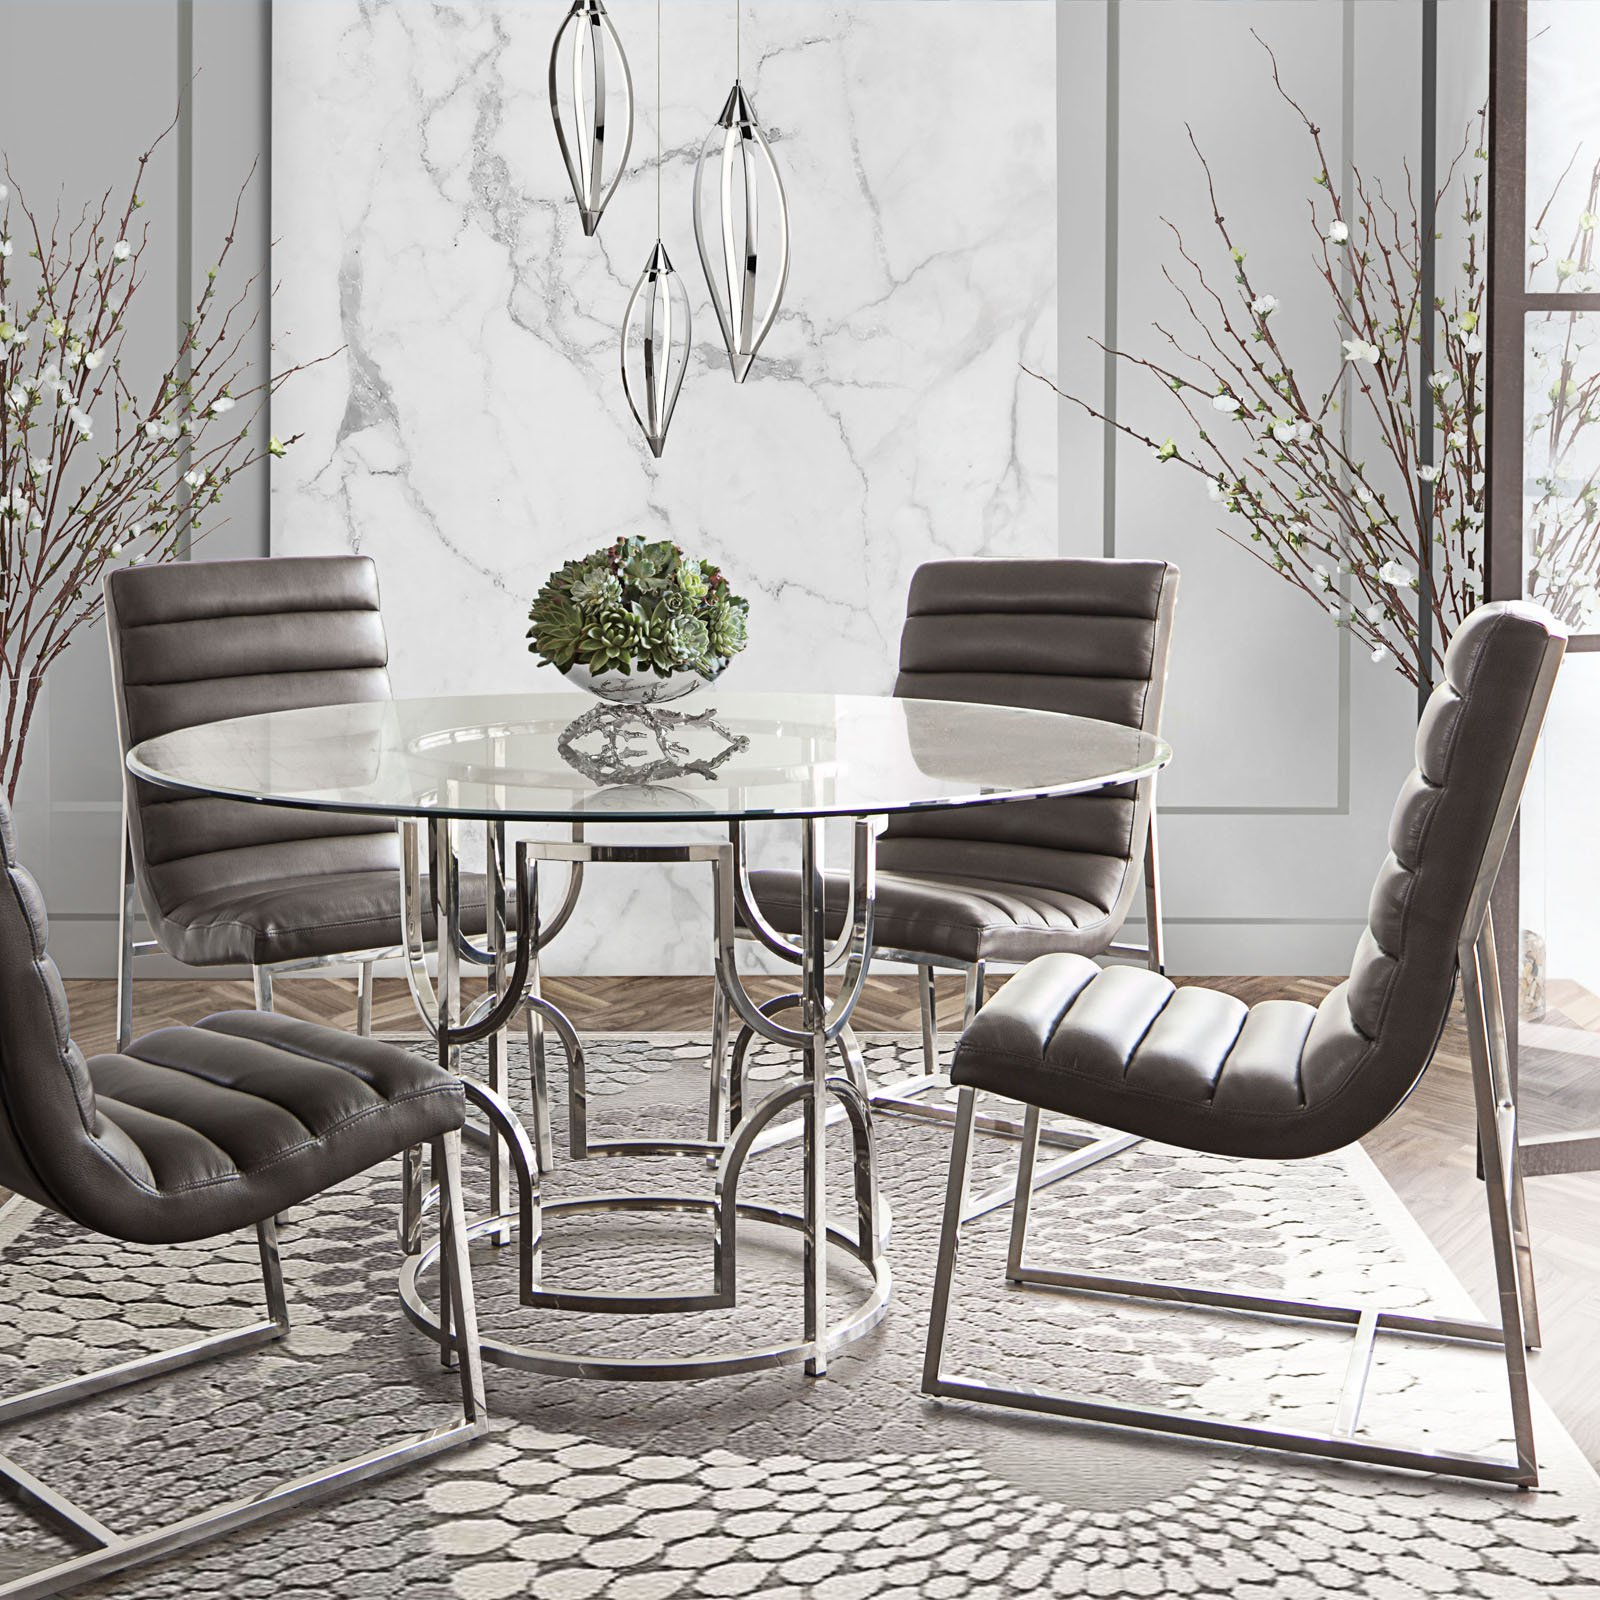 Diamond Sofa Avalon 54 in. Round Glass Dining Table